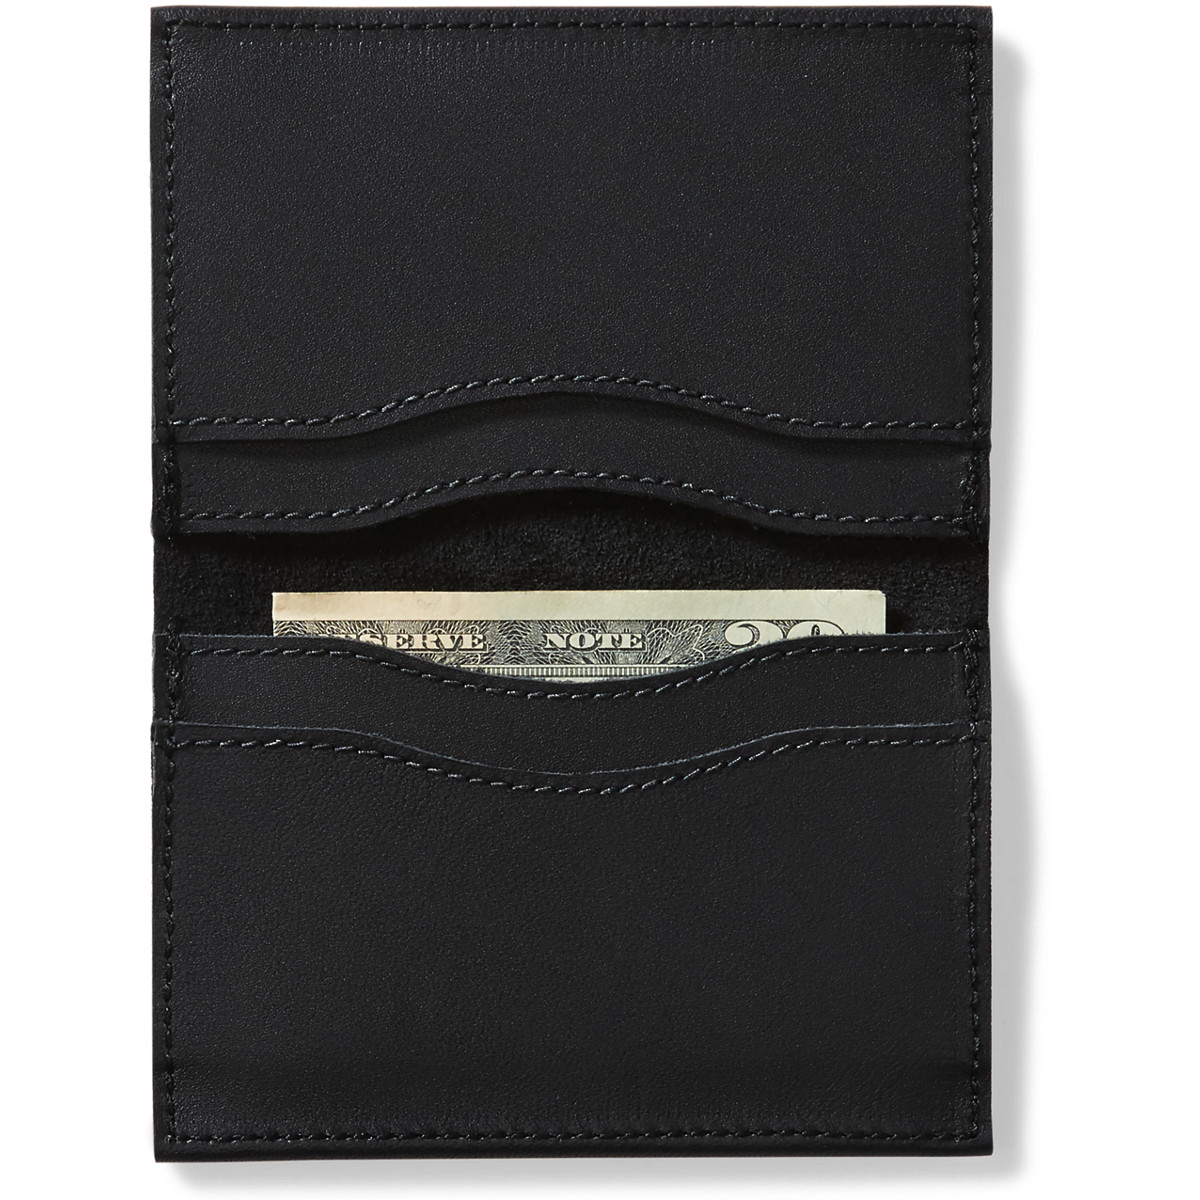 Danner Leather Wallet - Black